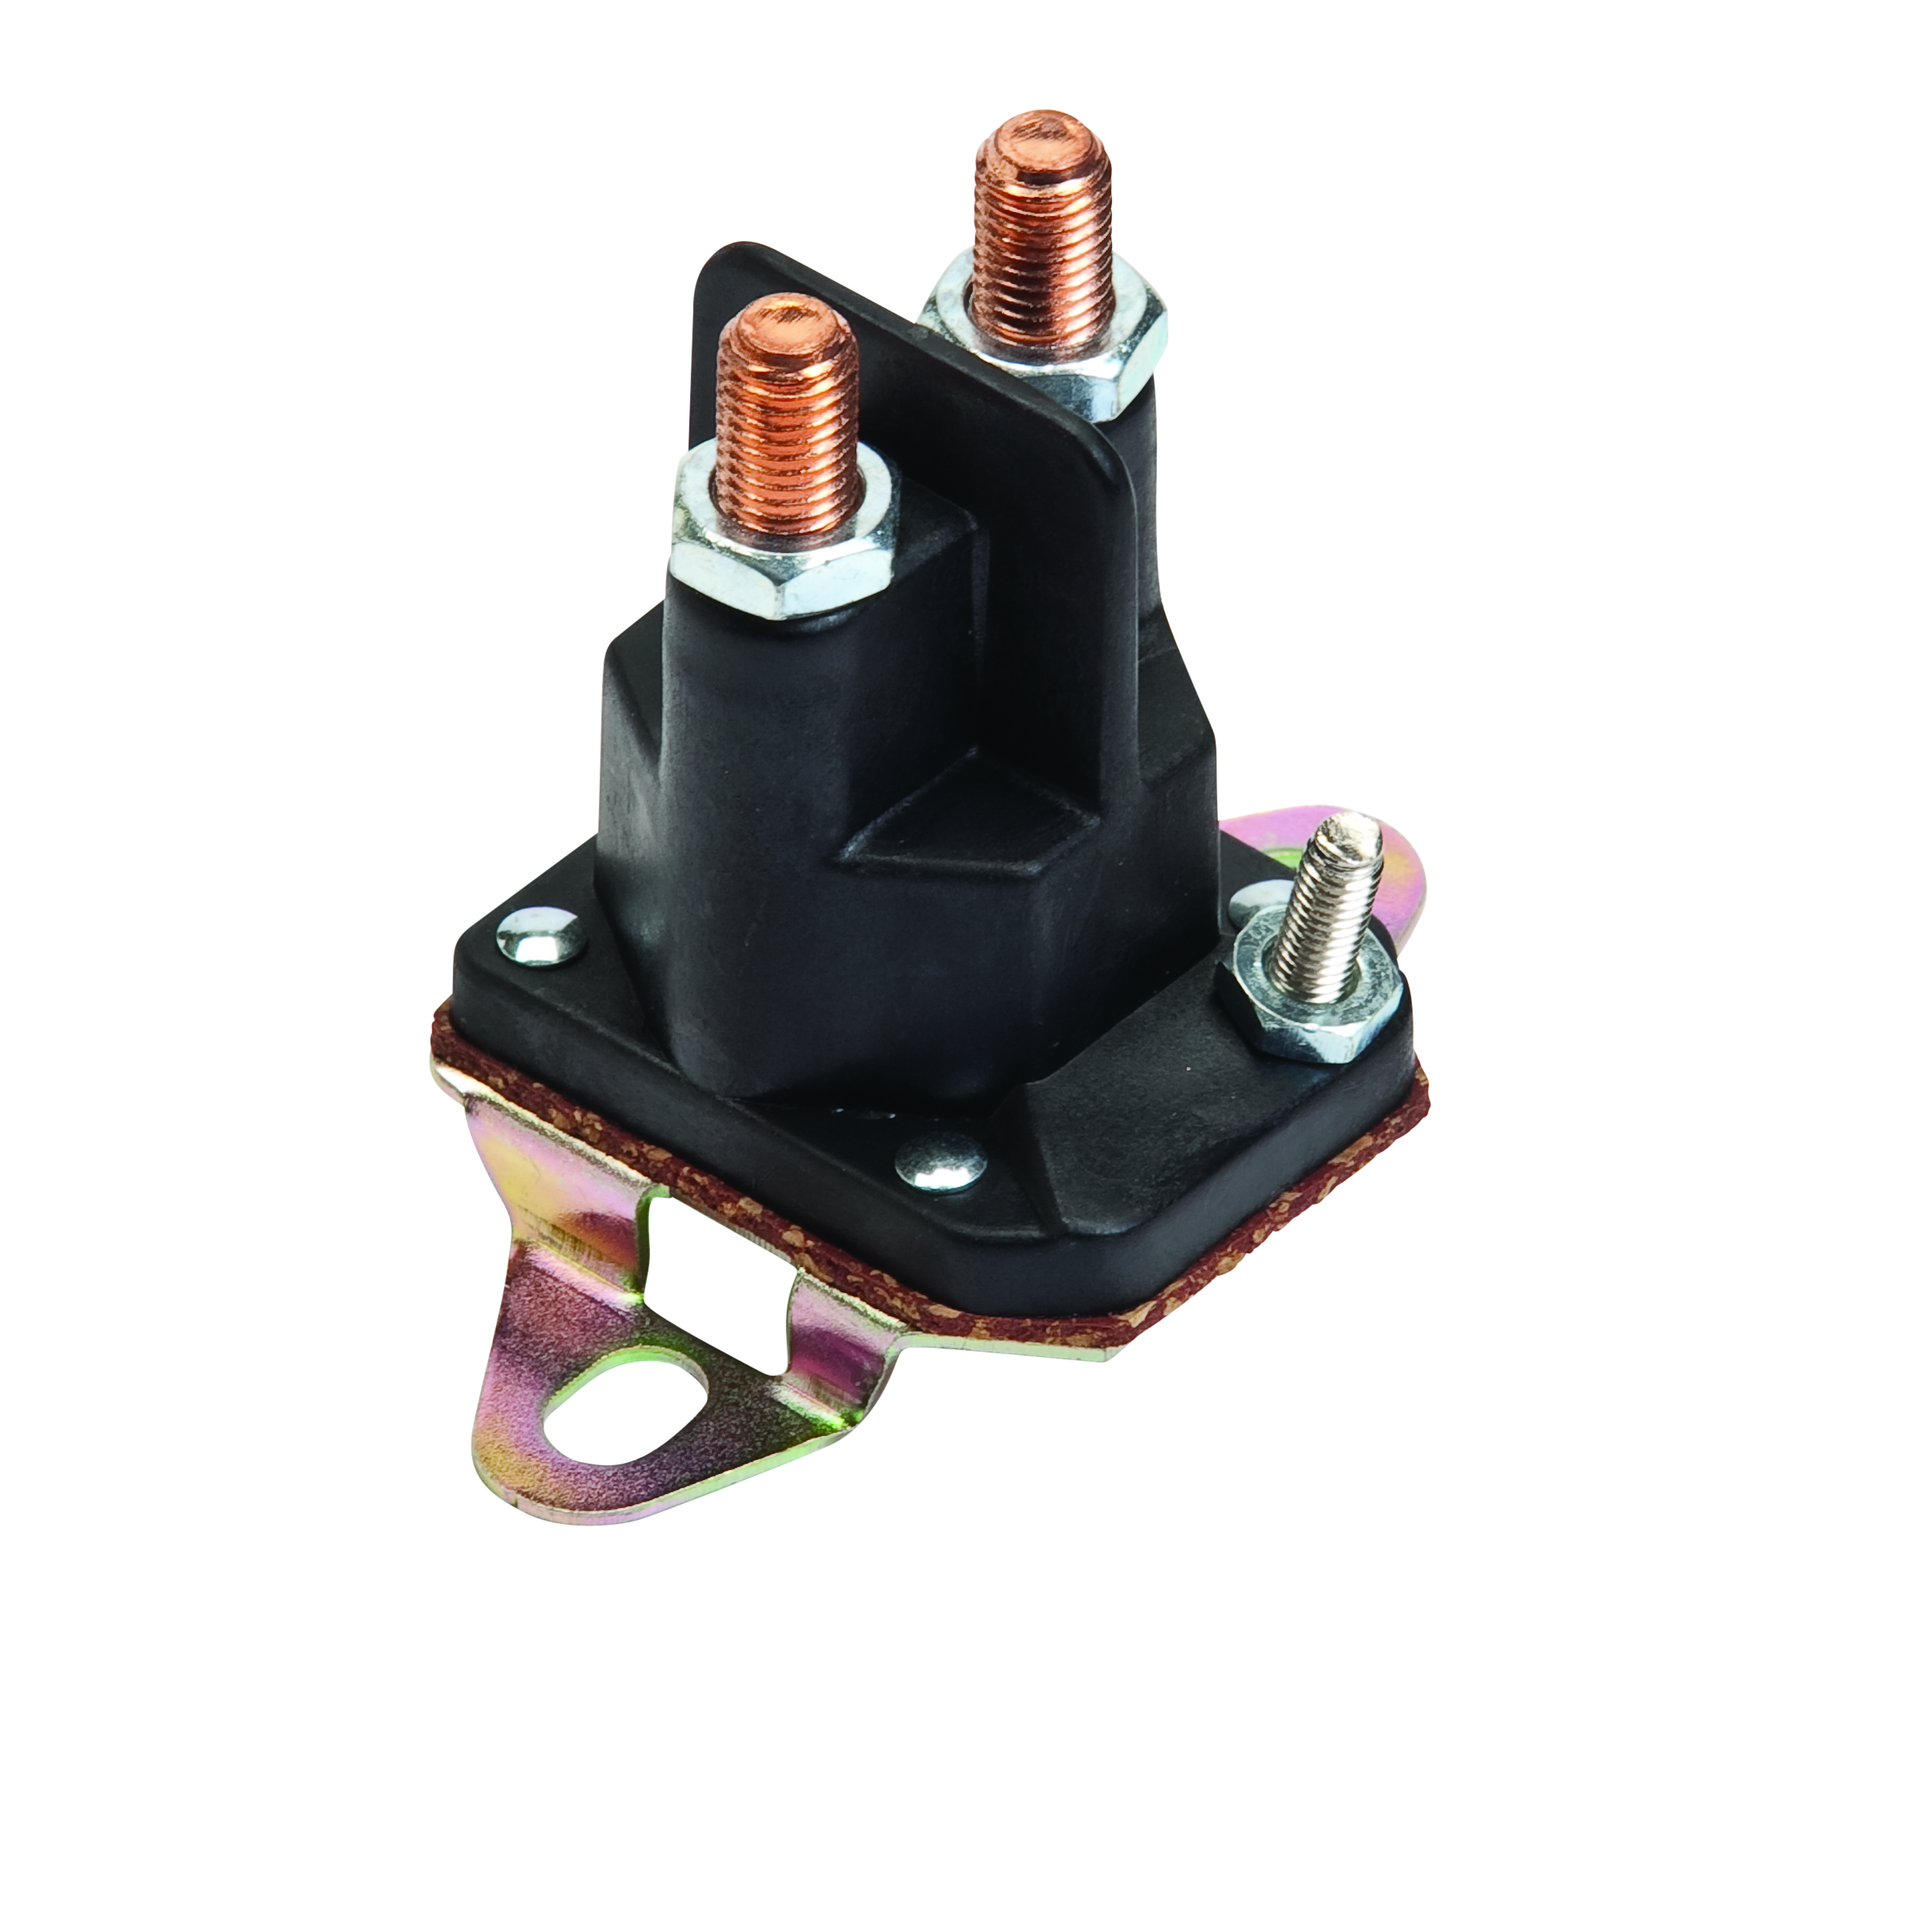 yardman solenoid wiring diagram    solenoid    for wheel horse 111674     solenoid    for wheel horse 111674